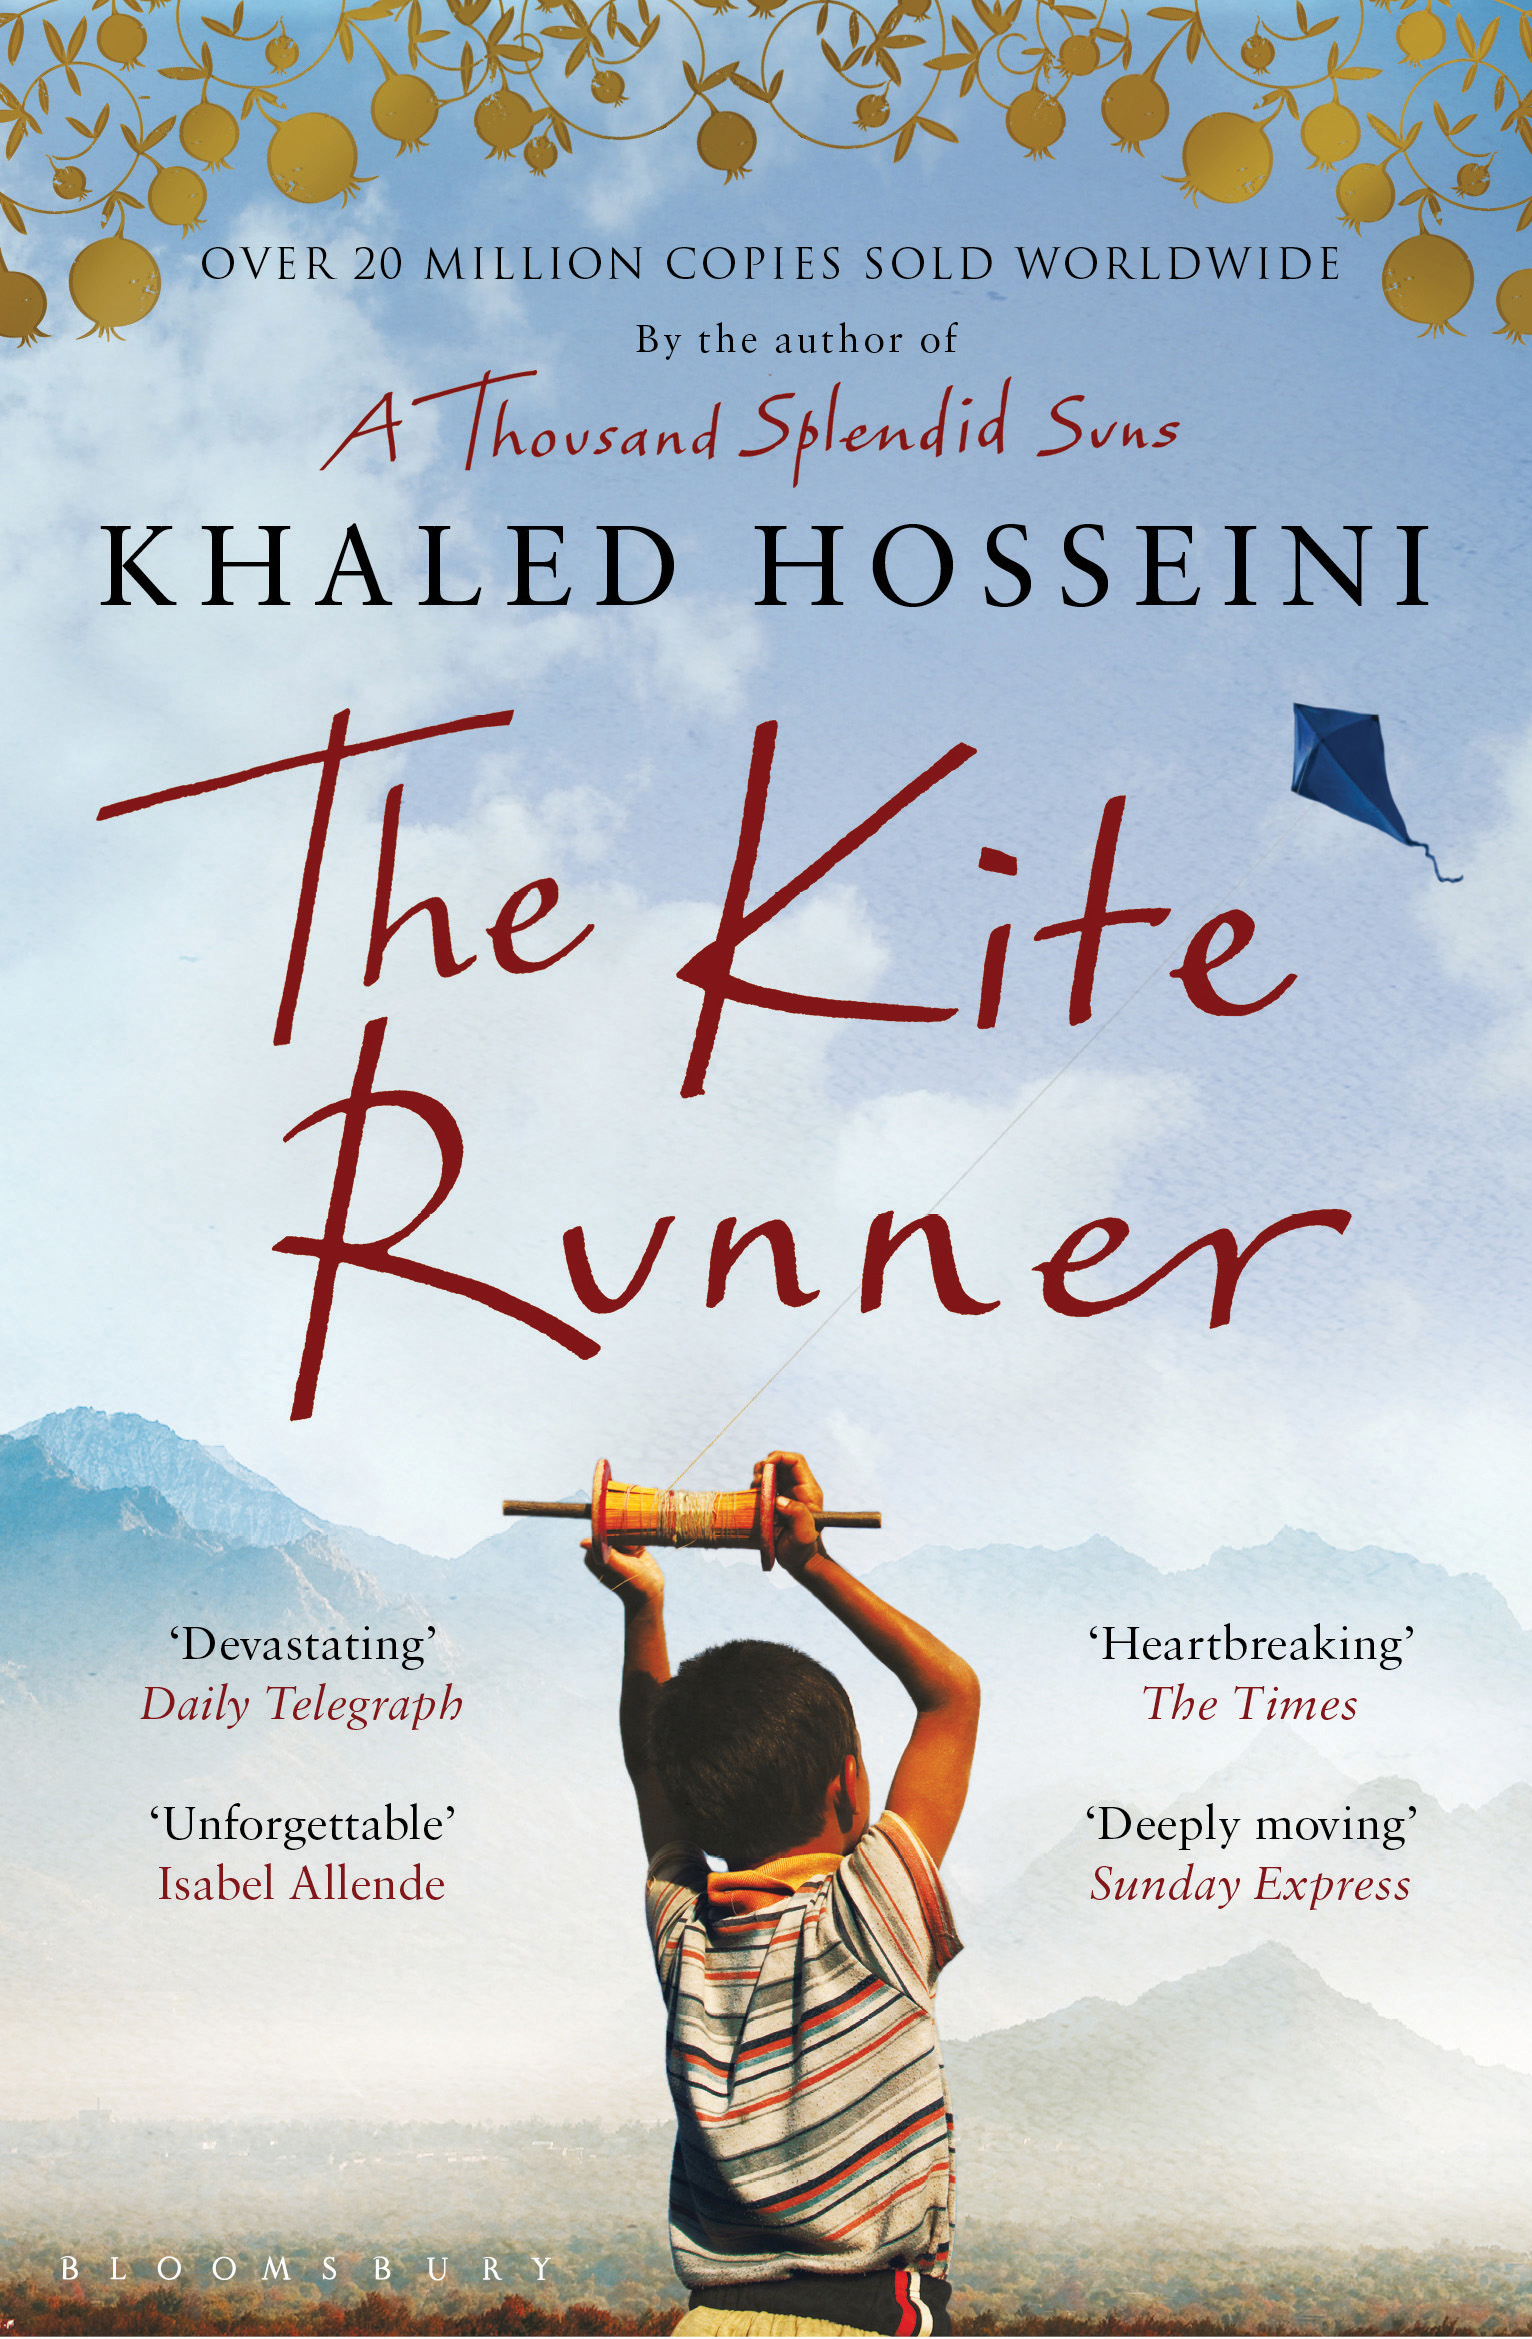 the kite runner khaled hosseini 9781408824856 allen unwin cover